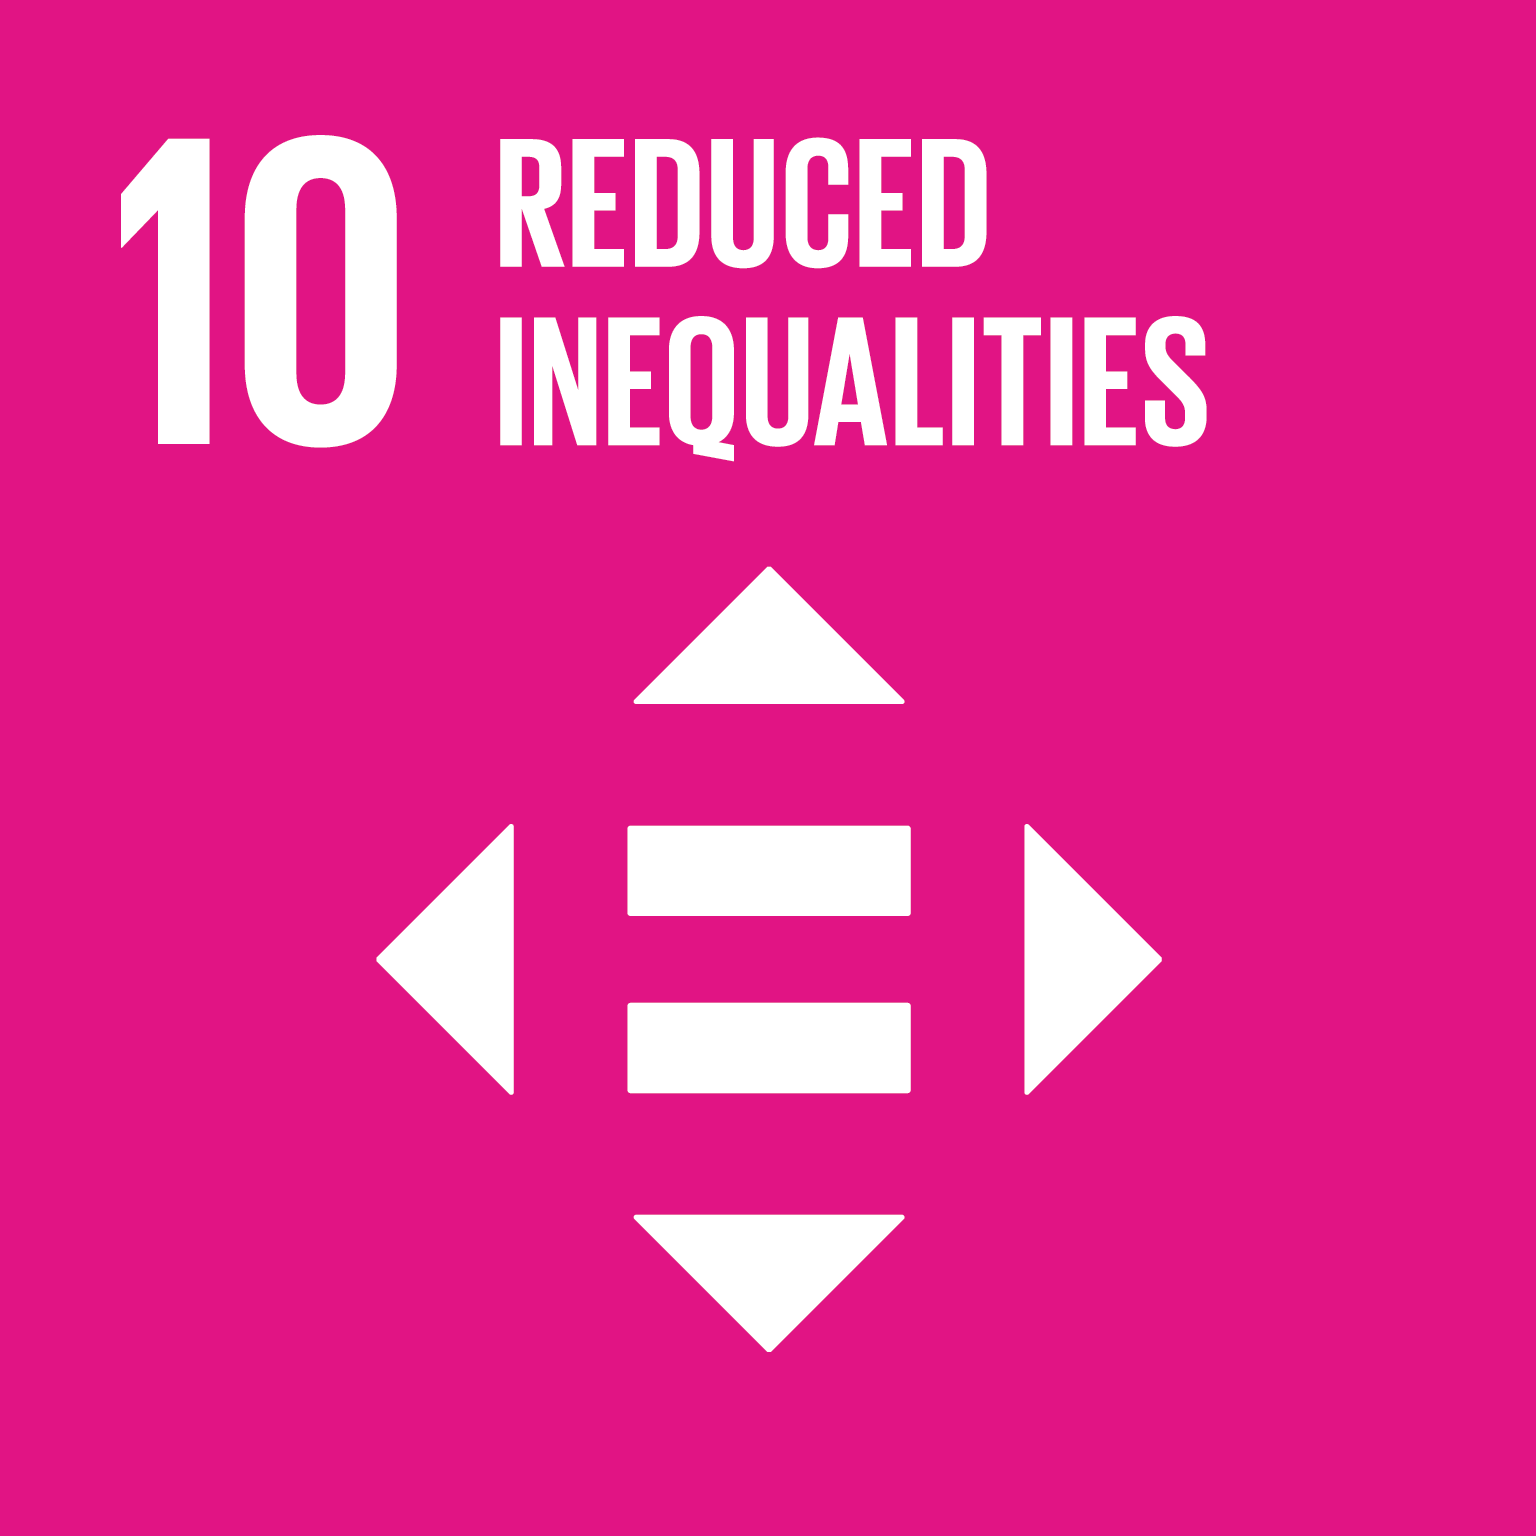 GOAL 10: Reduced Inequality